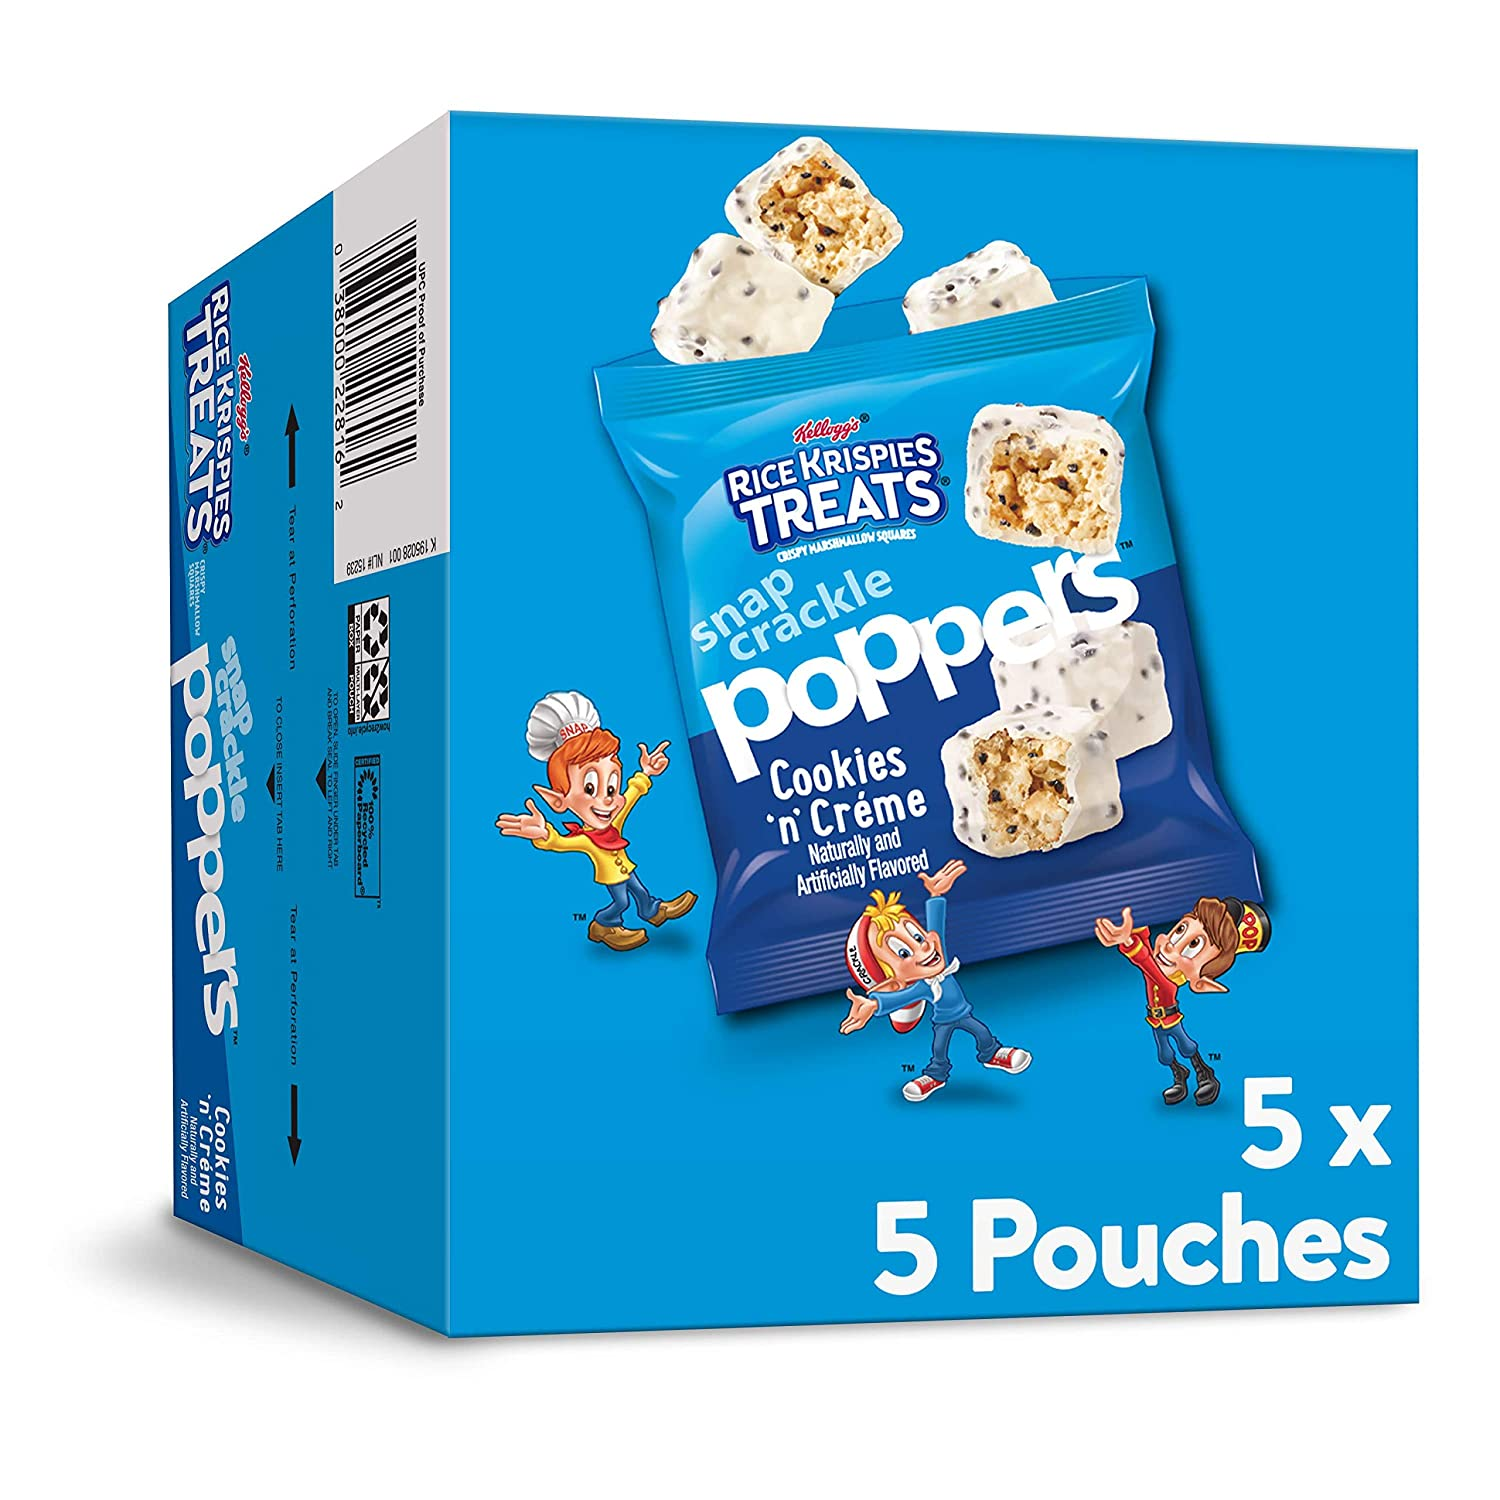 Kellogg's Rice Krispies Treats Snap, Crackle, Poppers, Crispy Marshmallow Squares, Cookies n' Crème, 5oz Carton (Pack of 5, 25 pouches)